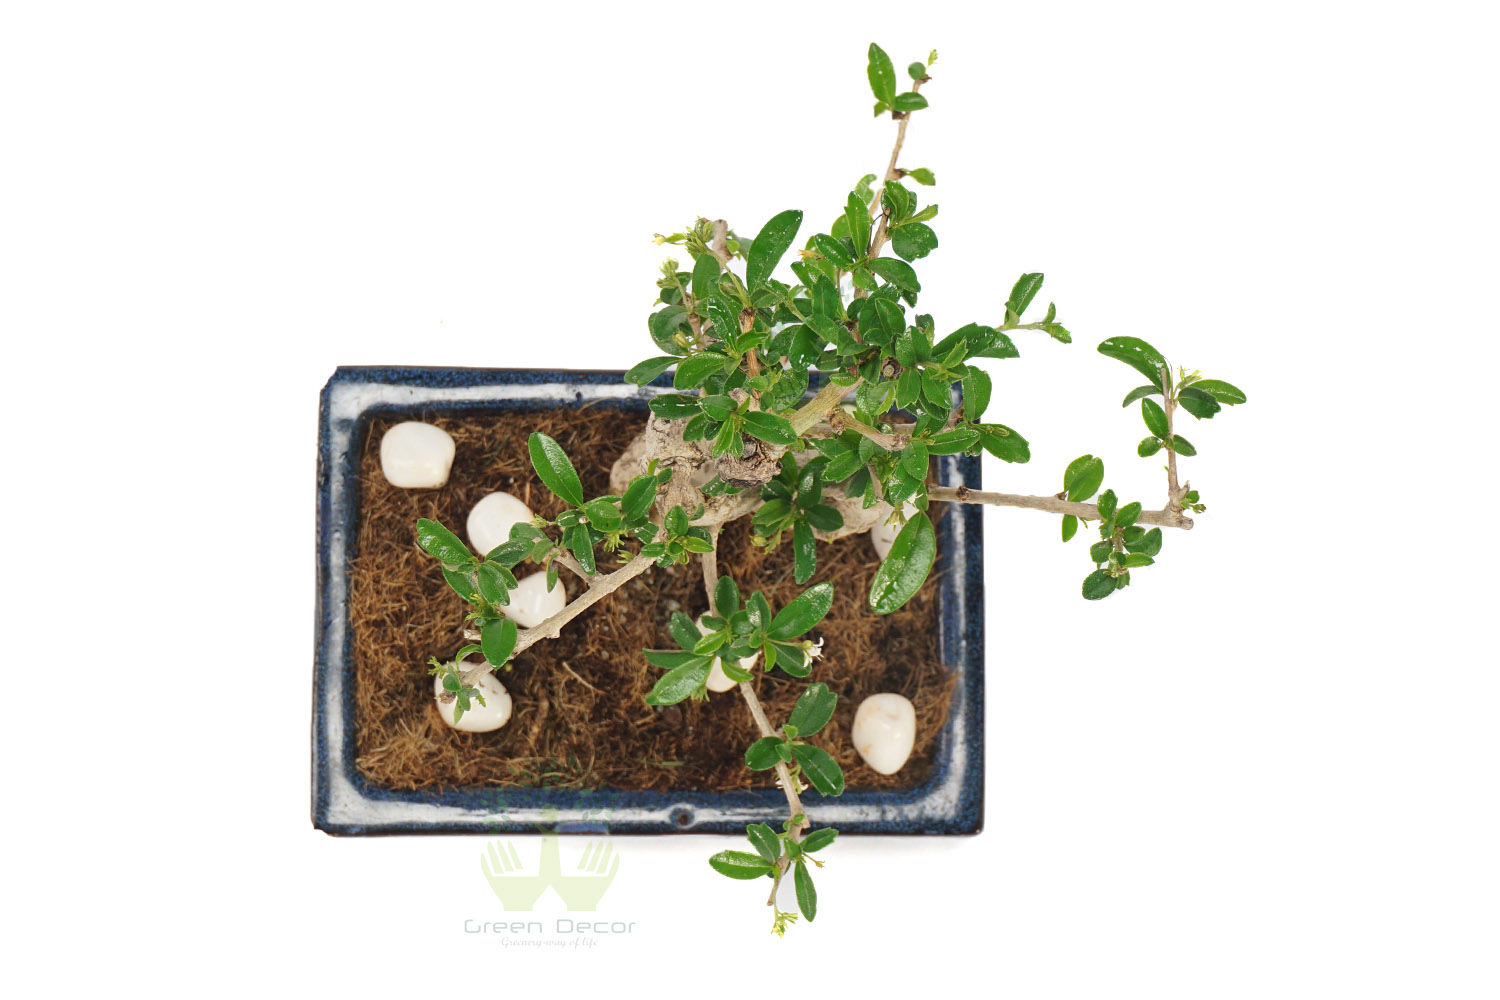 Buy Ficus Plant Leaves View , White Pots and Seeds in Delhi NCR by the best online nursery shop Greendecor.